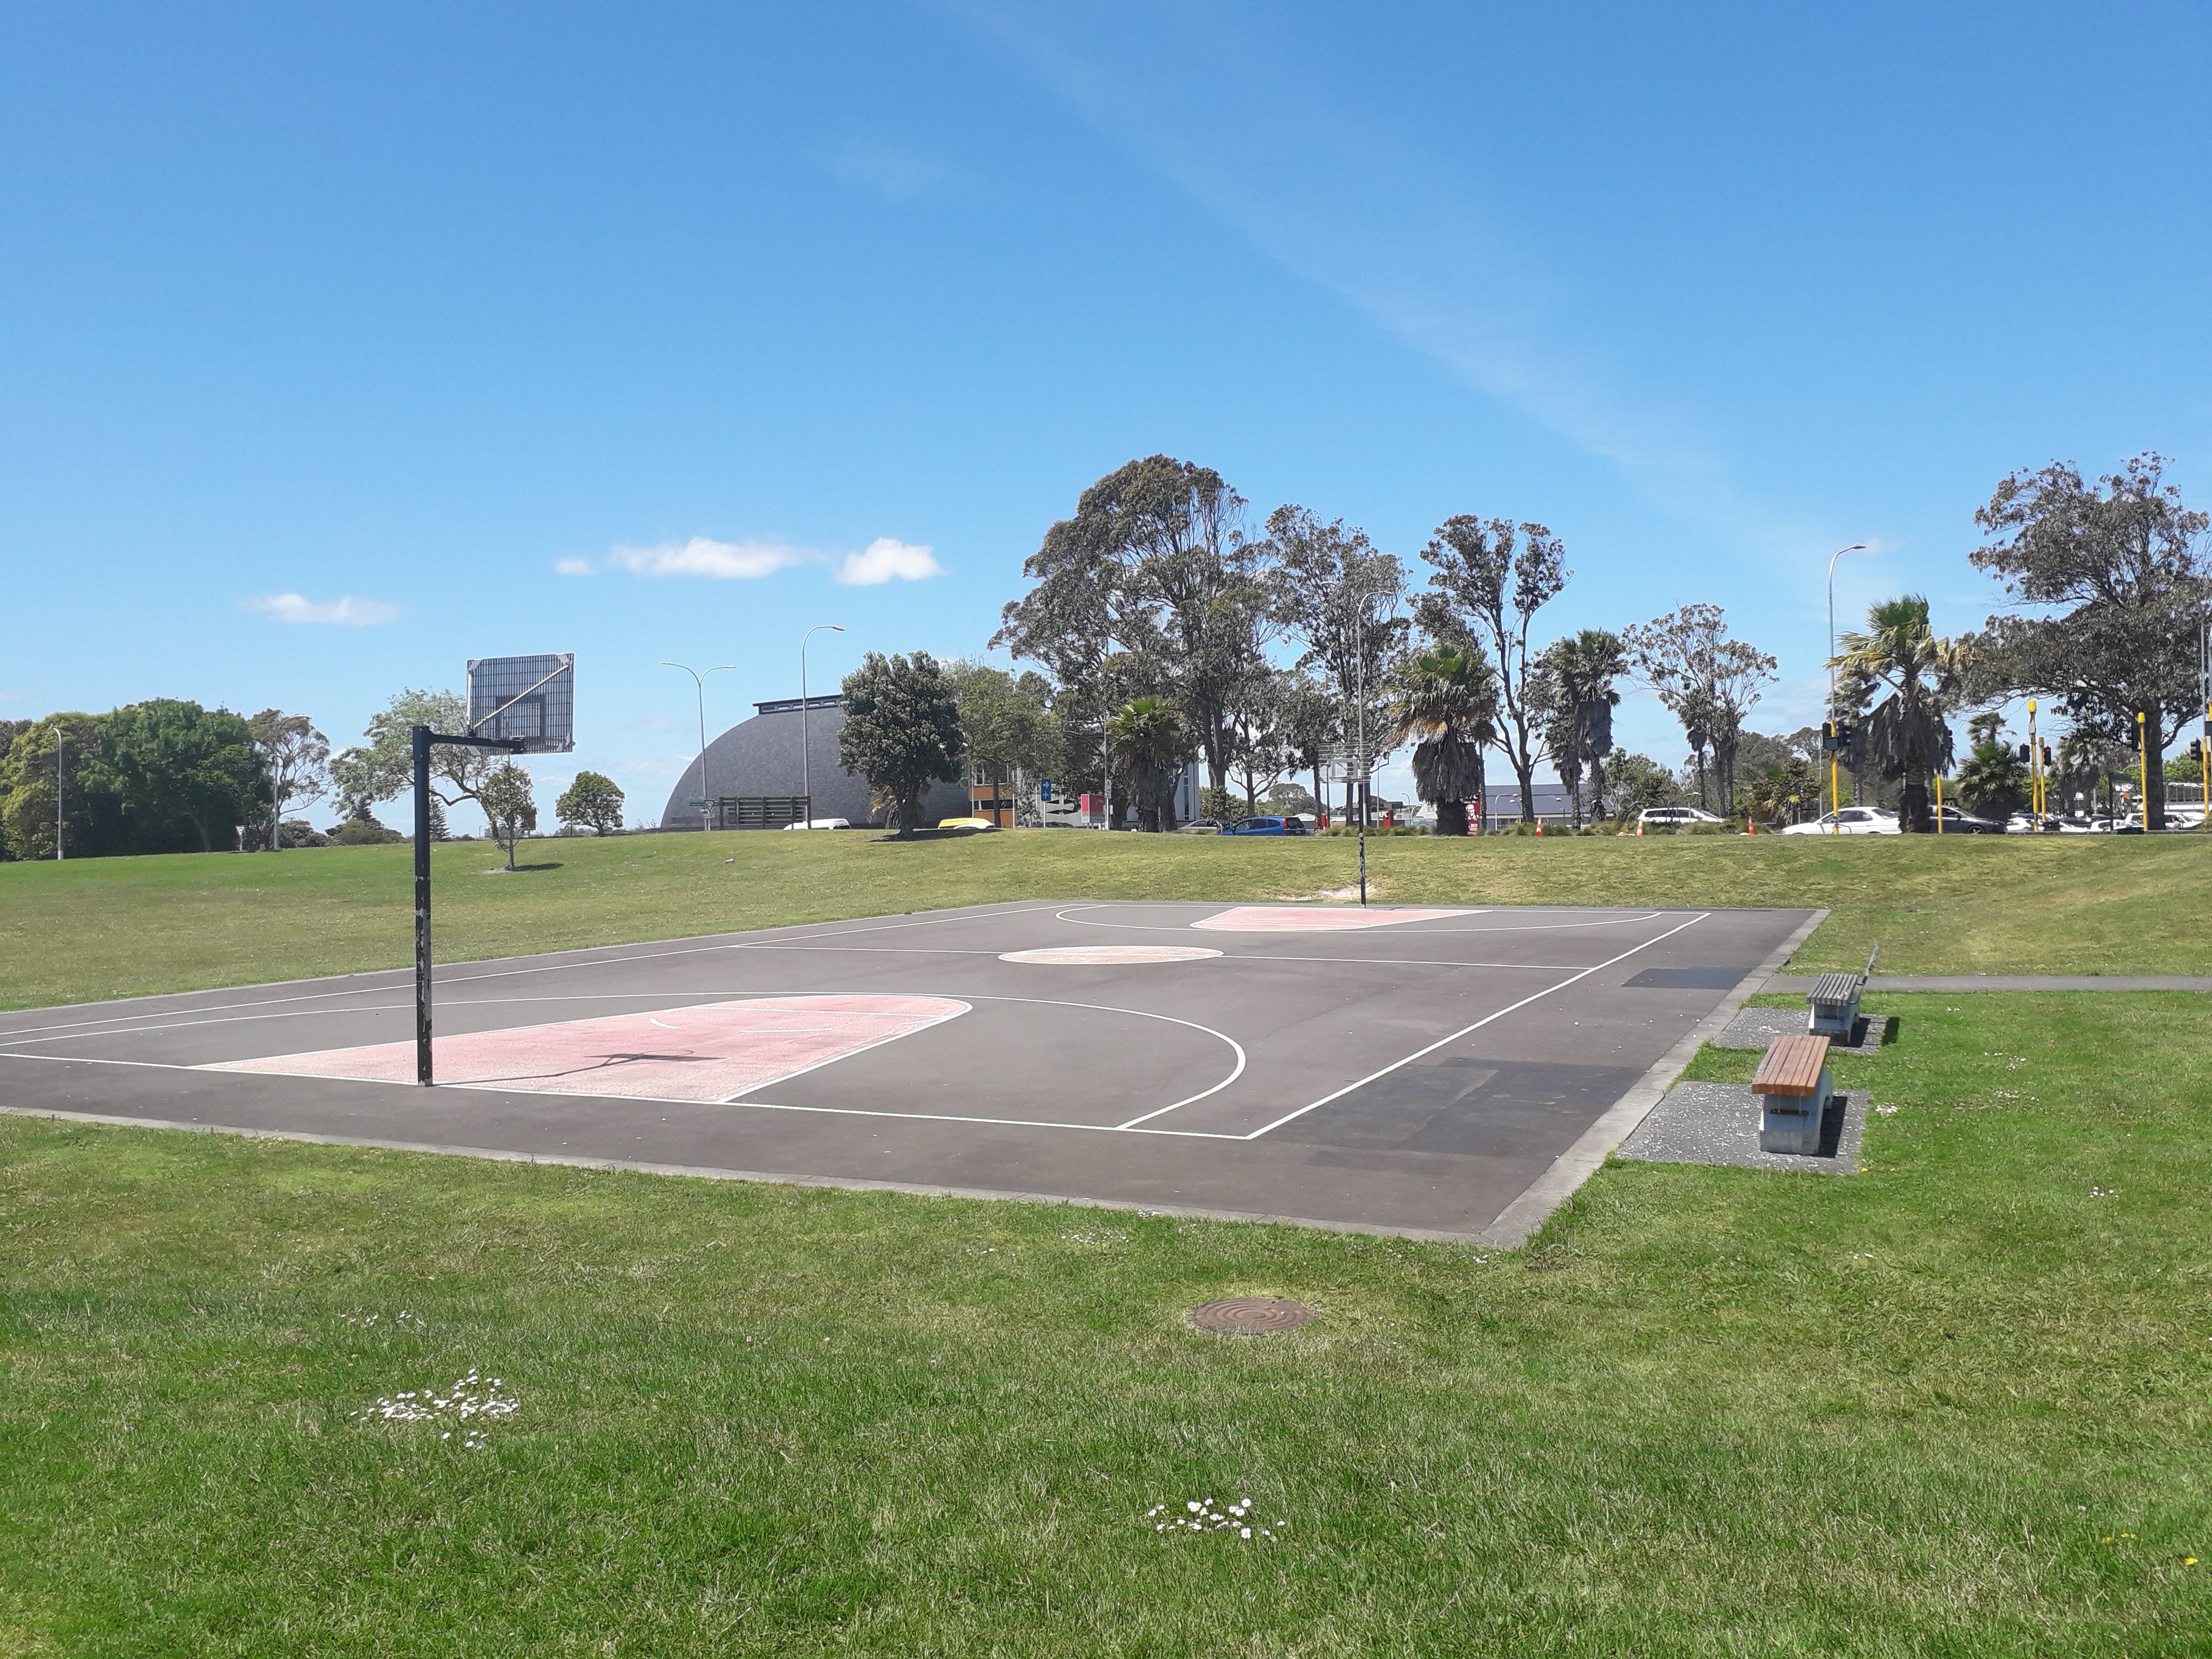 Existing Photograph - Basketball Court